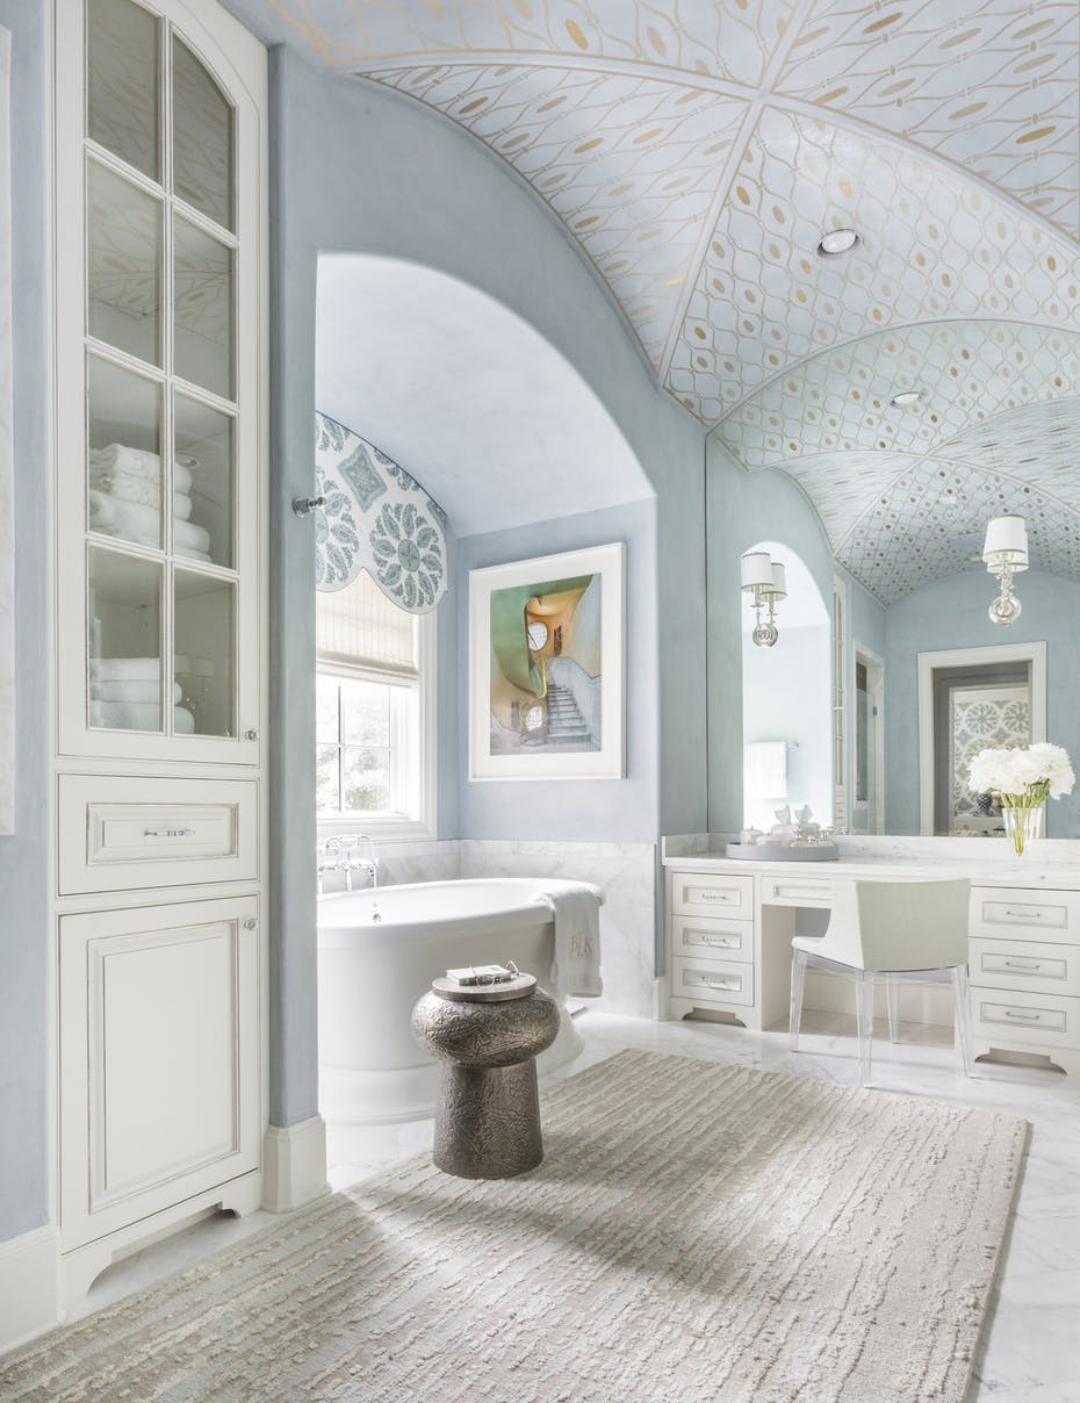 Top 20 Interior Designers/Architects from Houston, TX interior design Interior Designers/Architects from Houston, a look at Bathroom Designs – Top 20 Top 20 Interior DesignersArchitects from Houston TX Lucas Eilers MV